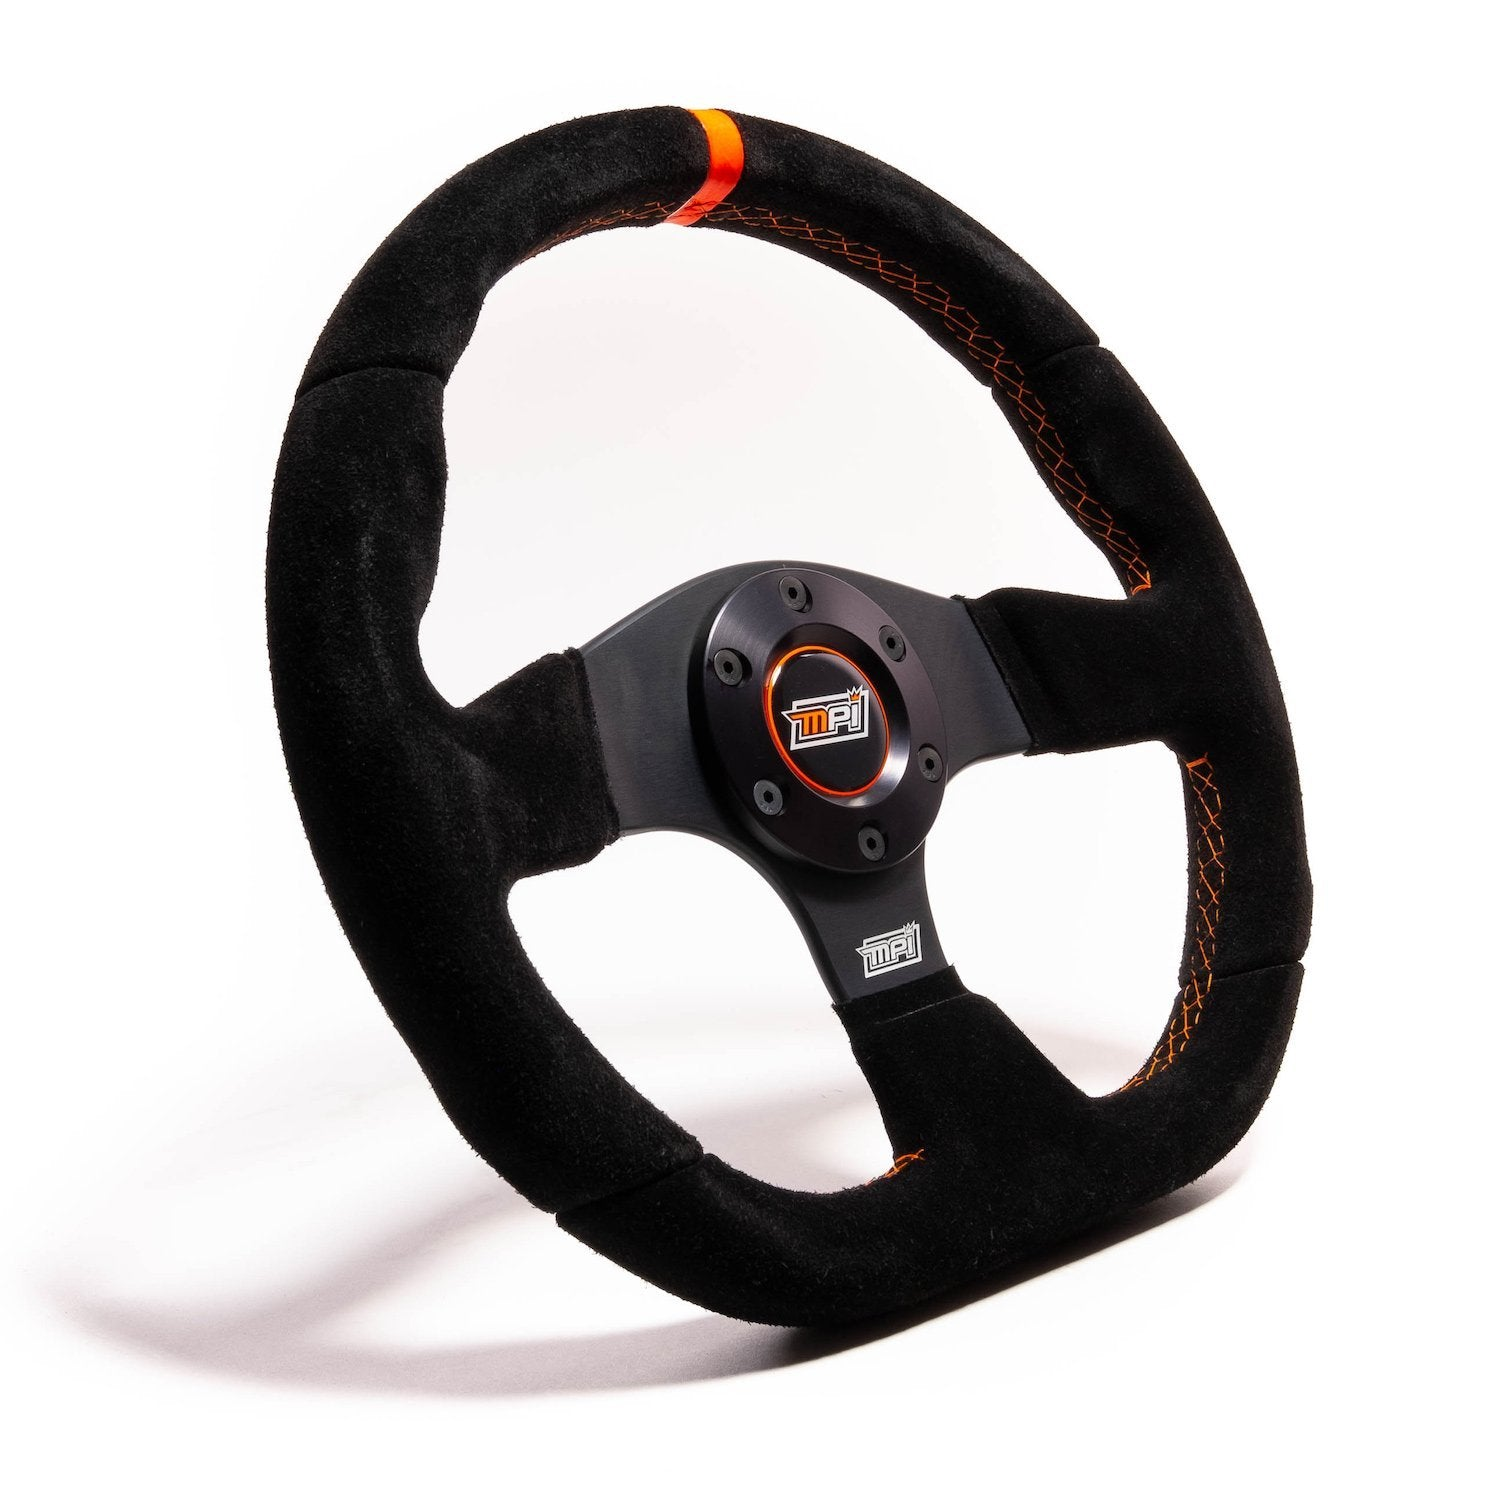 MPI Road Course Concept Specific Steering Wheel (MPI-GT-13-C)-MPI-Motion Raceworks